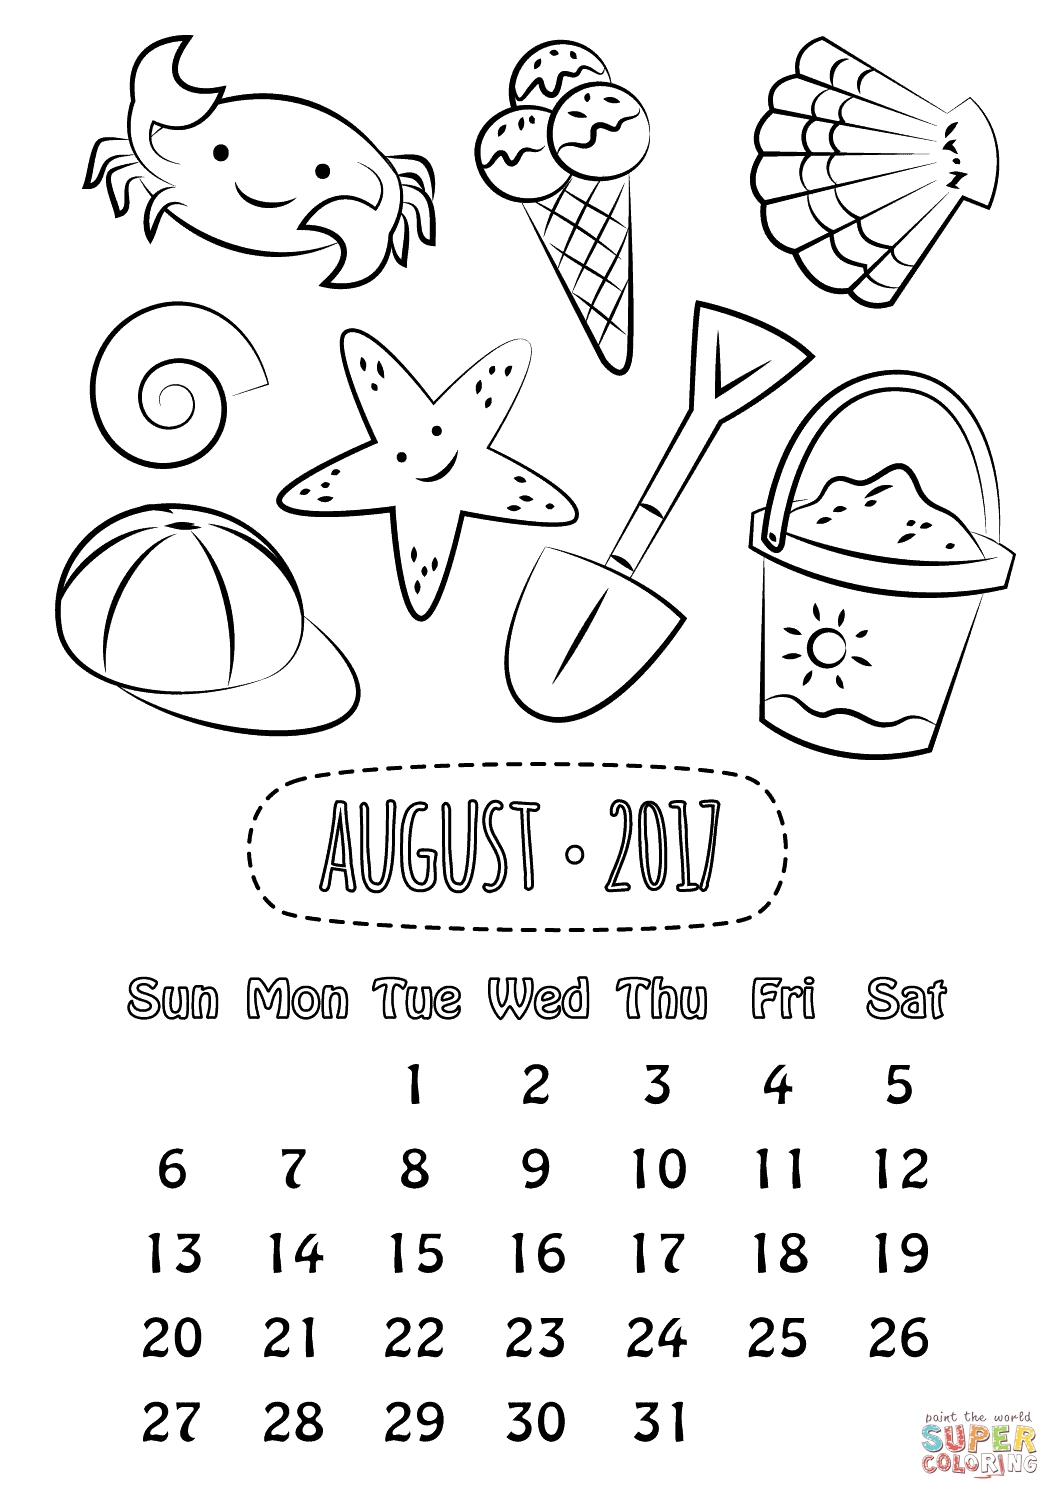 August 2017 Calendar Coloring Page | Free Printable Coloring Pages  August Printable Images To Color